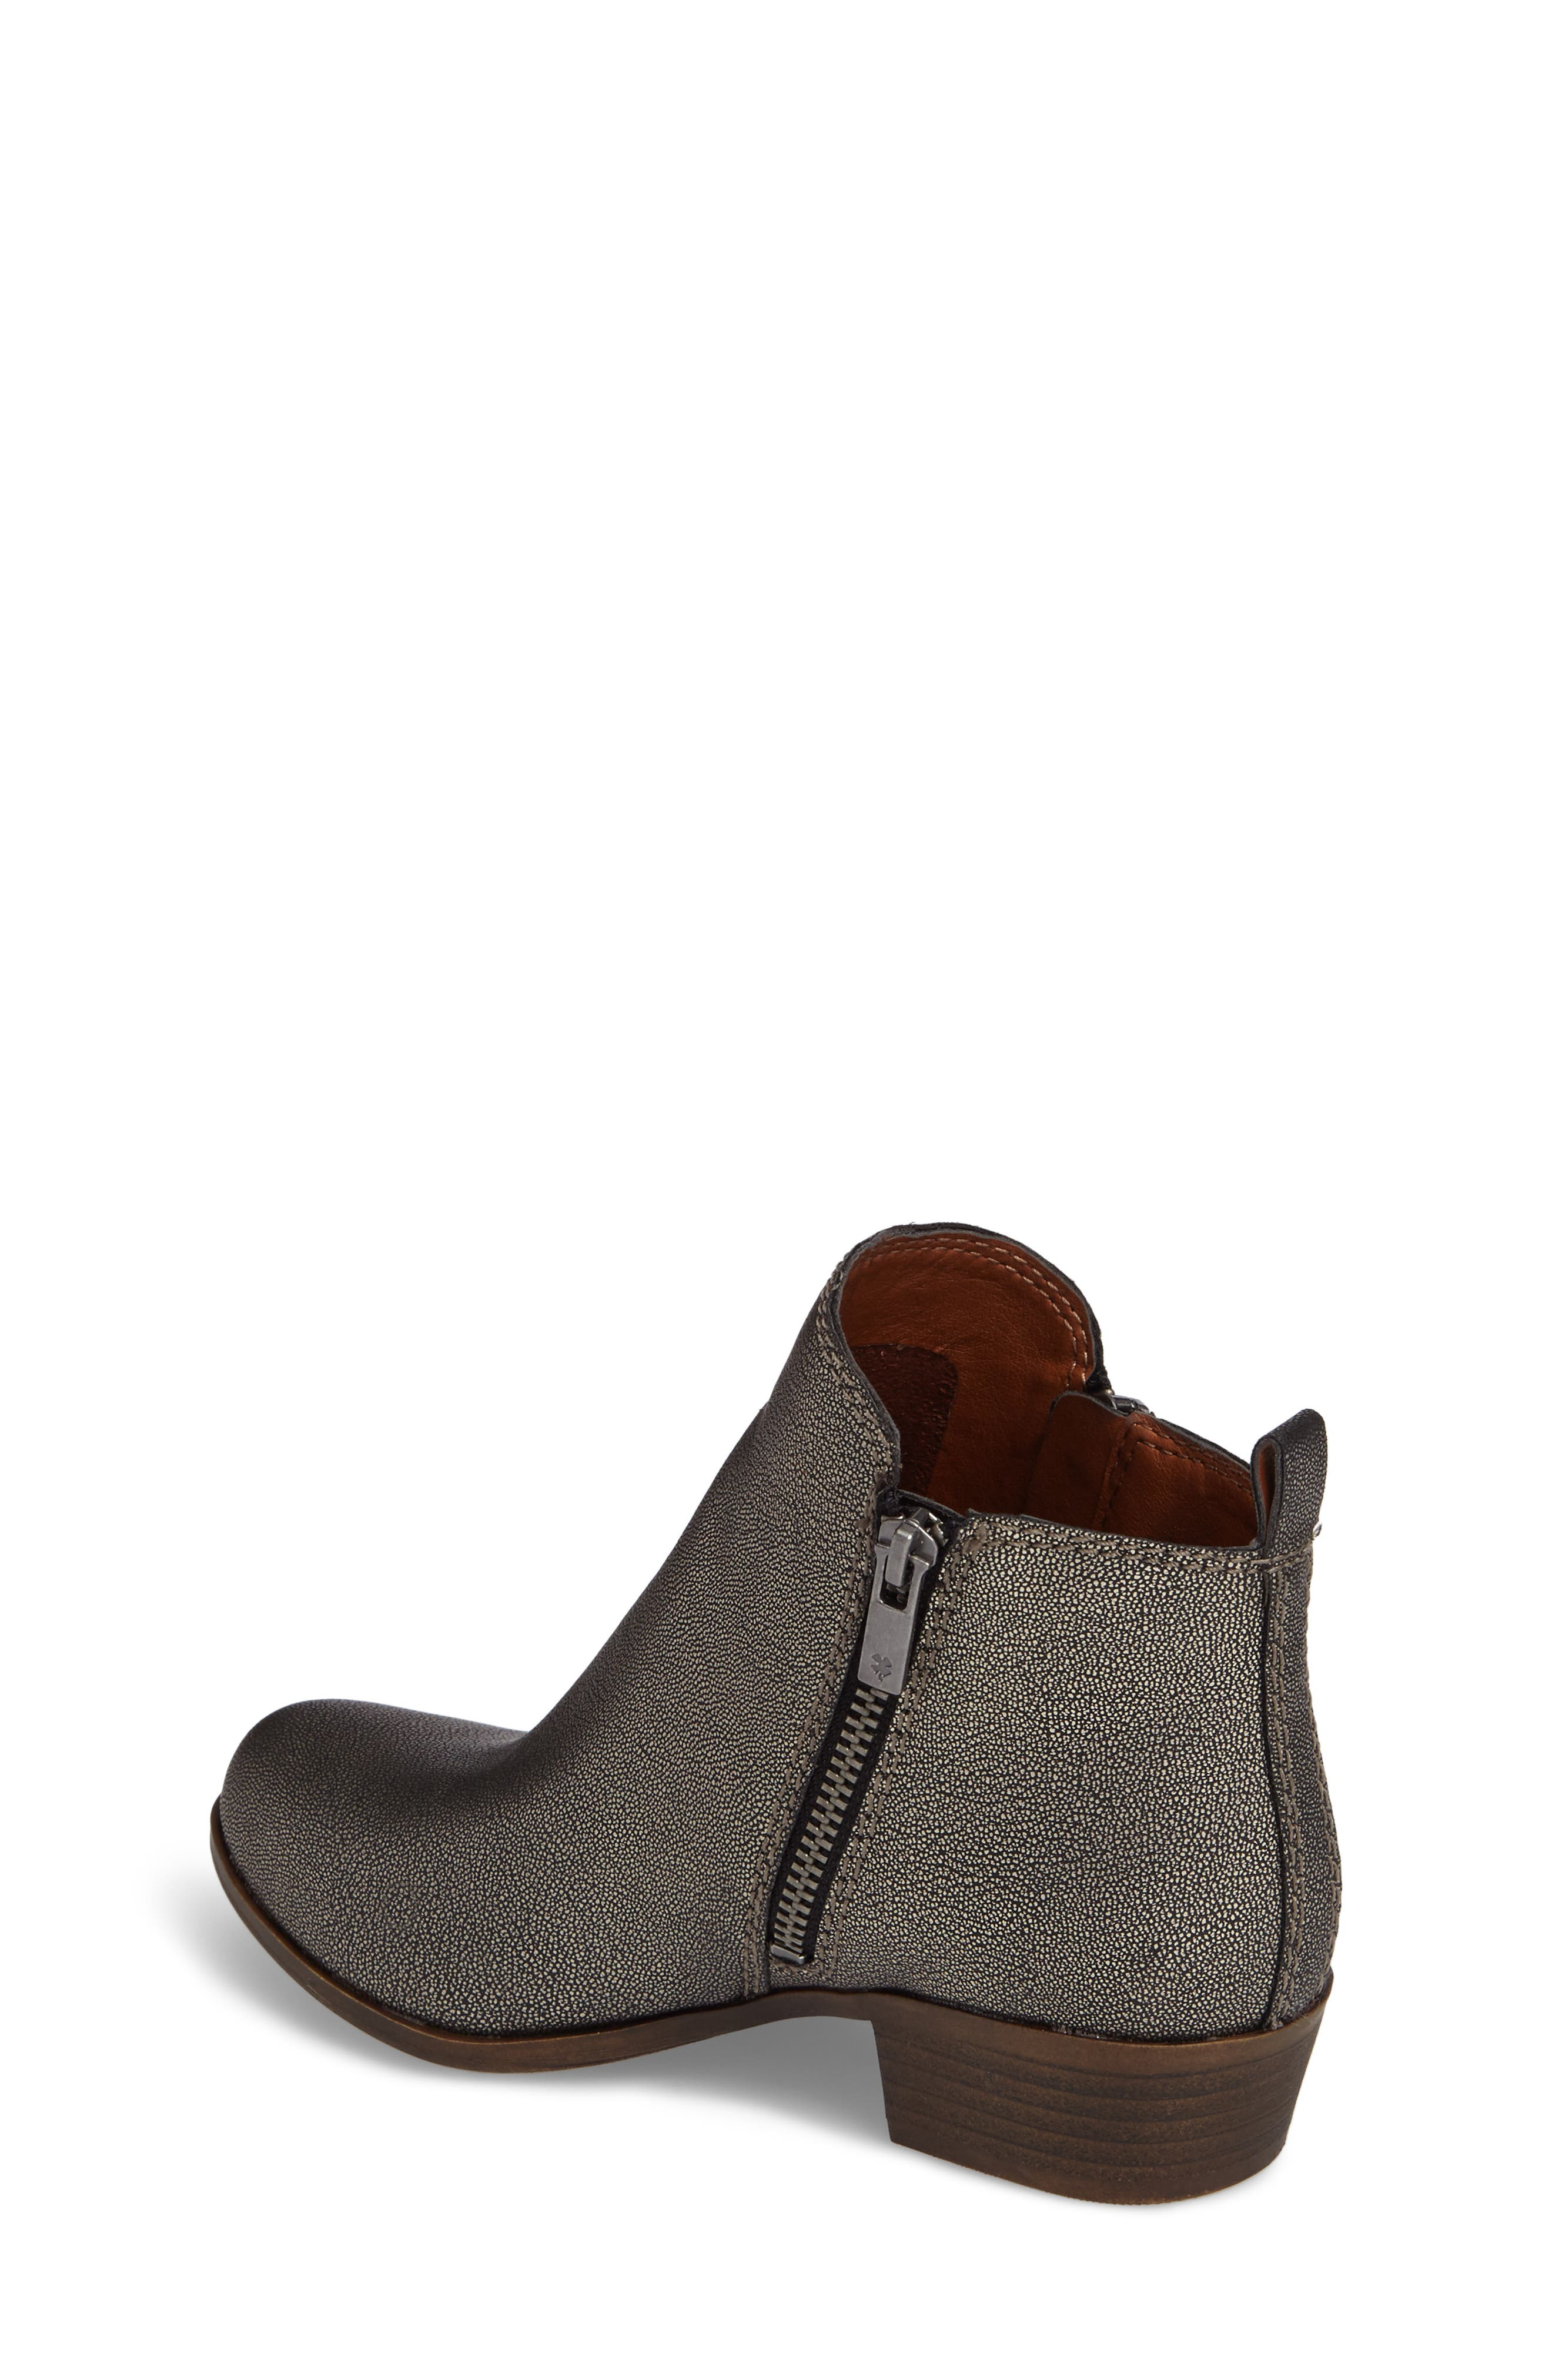 Basel Double-Zip Bootie,                             Alternate thumbnail 2, color,                             Pewter